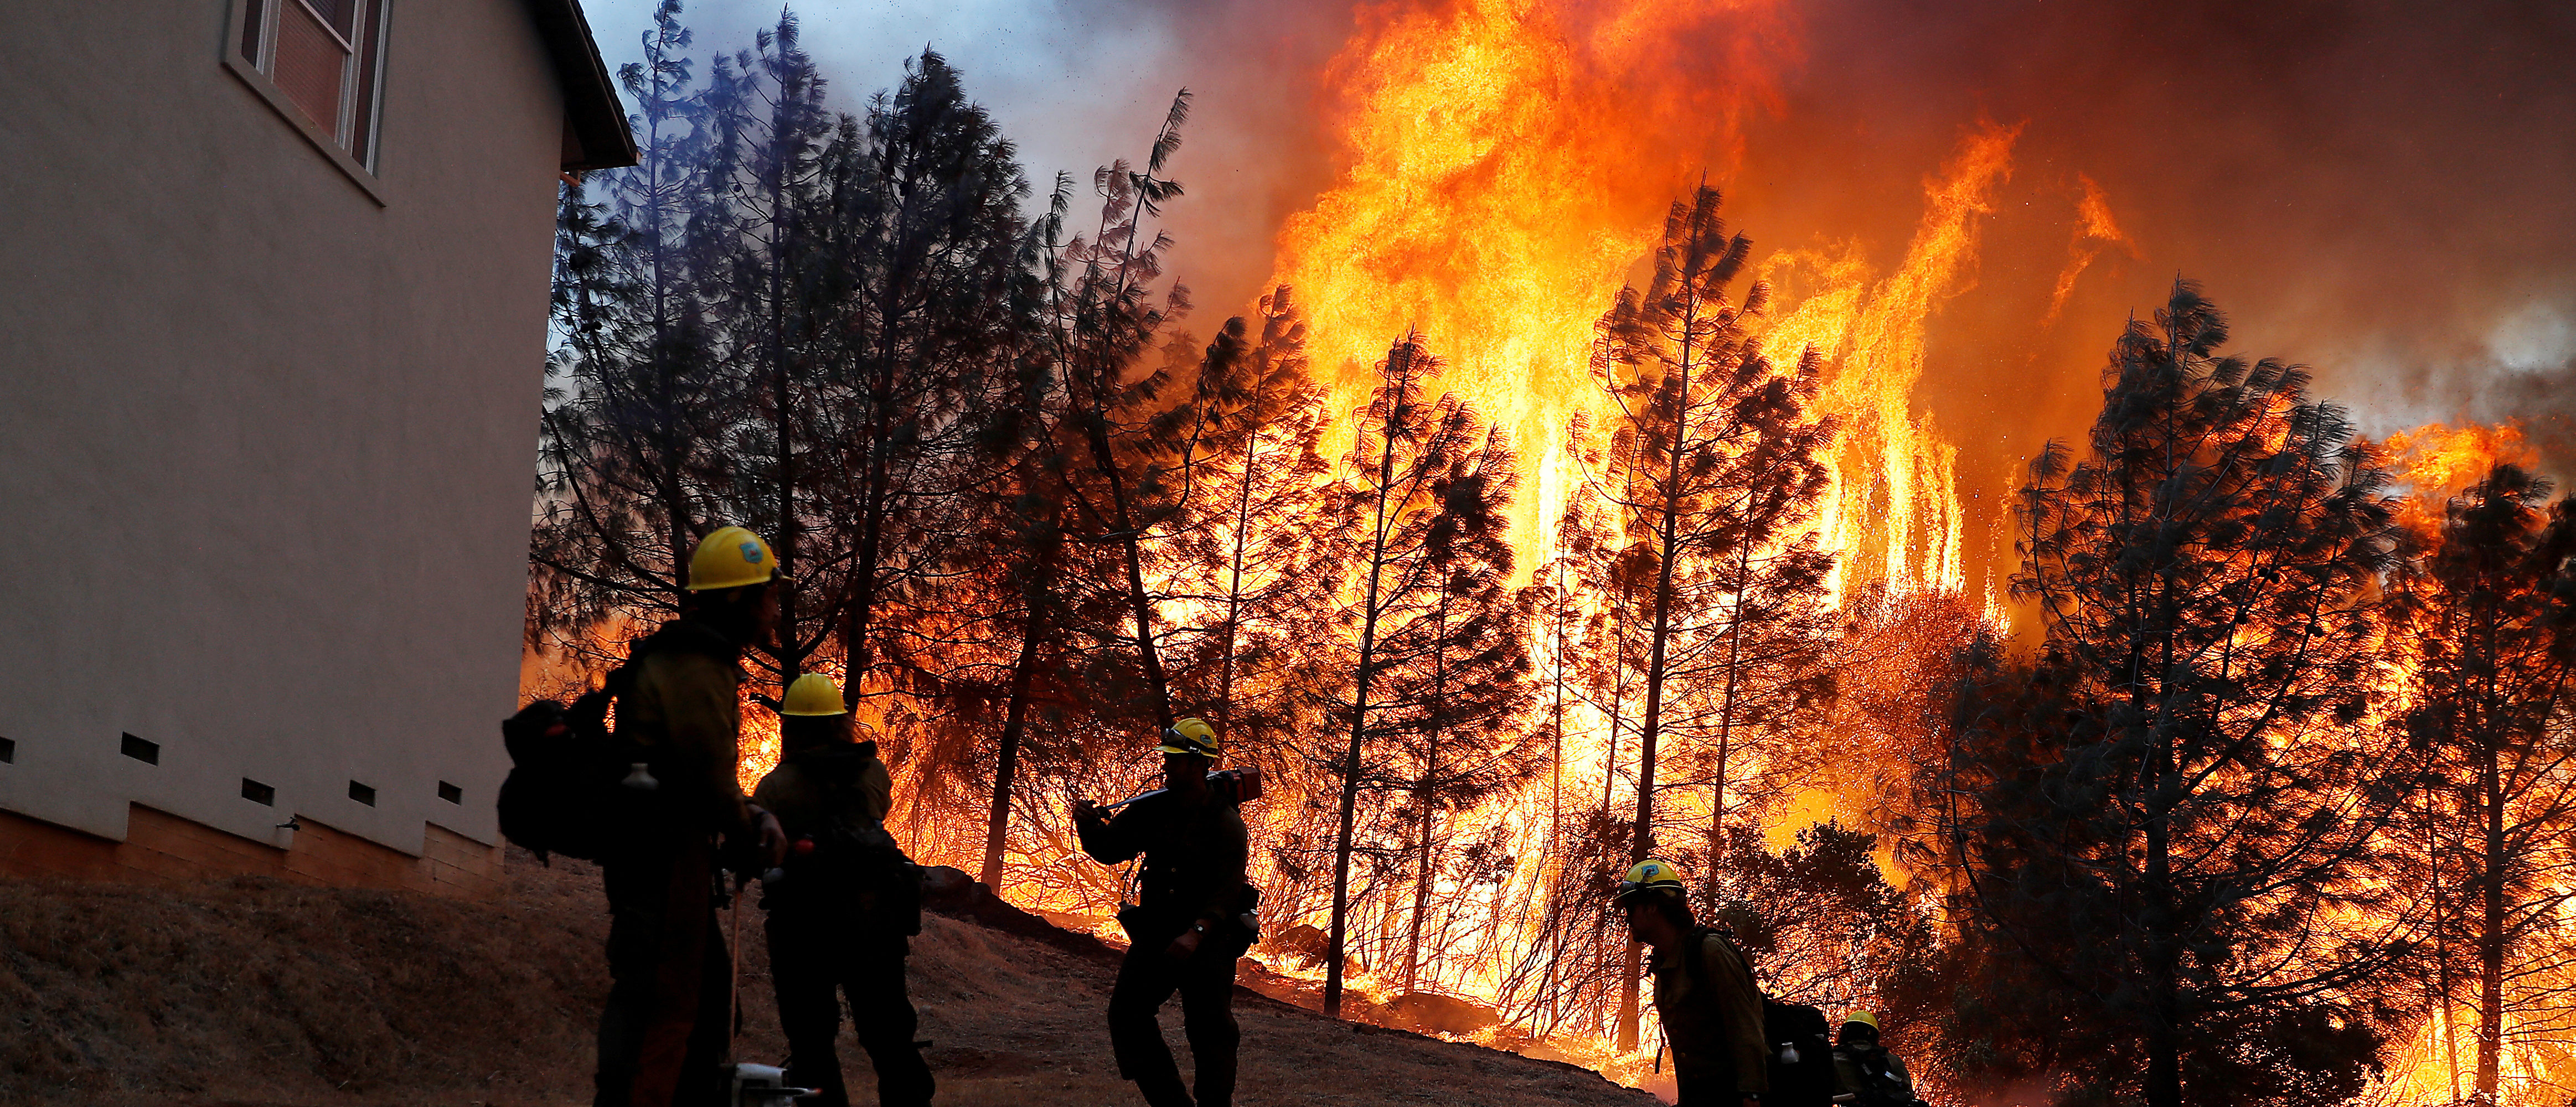 A group of U.S. Forest Service firefighters monitor a back fire while battling to save homes at the Camp Fire in Paradise, California, U.S. November 8, 2018. REUTERS/Stephen Lam TPX IMAGES OF THE DAY - RC13174EDFB0